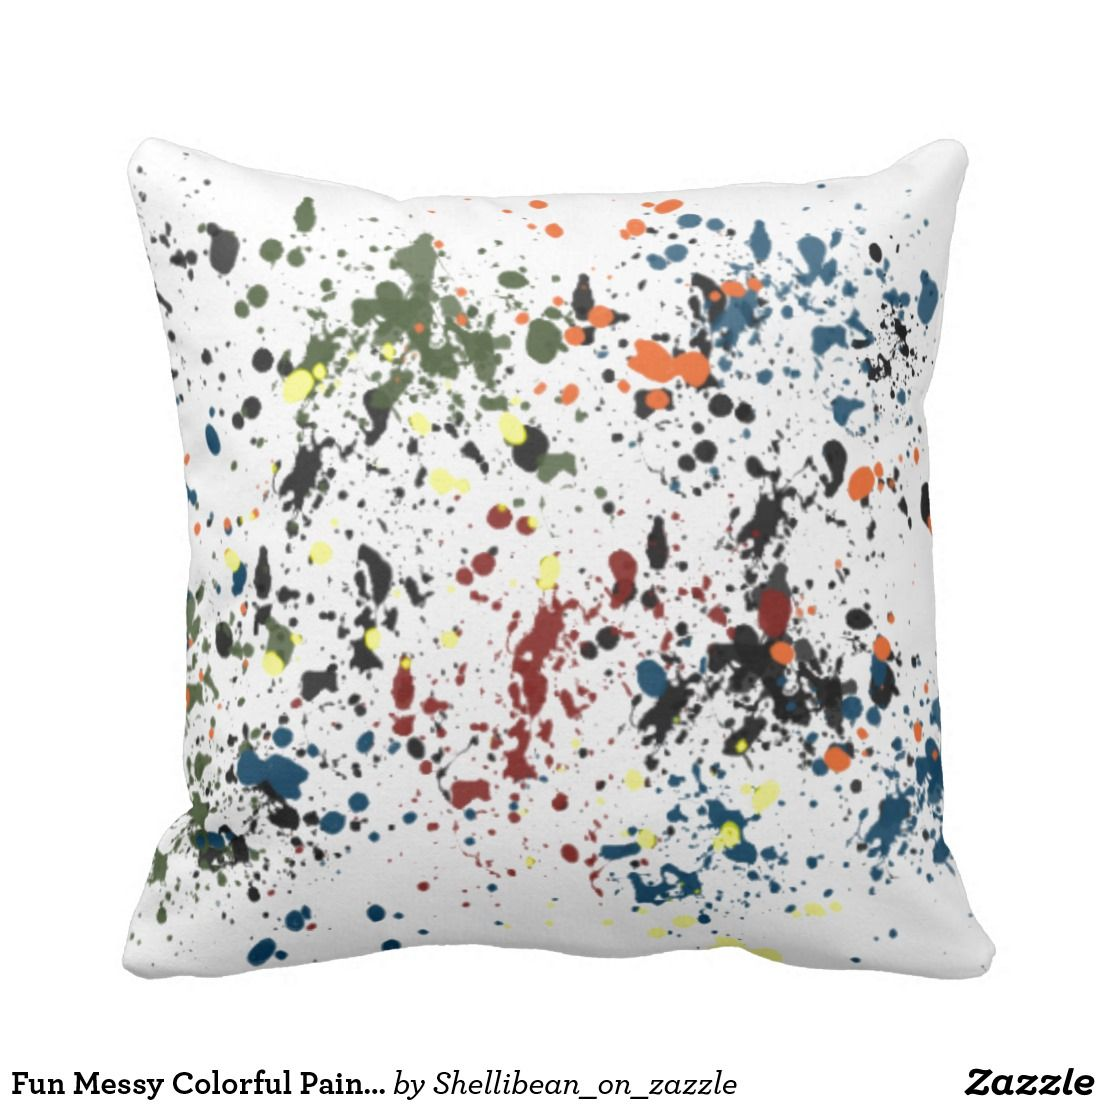 Fun messy colorful paint splatters modern abstract throw pillow in